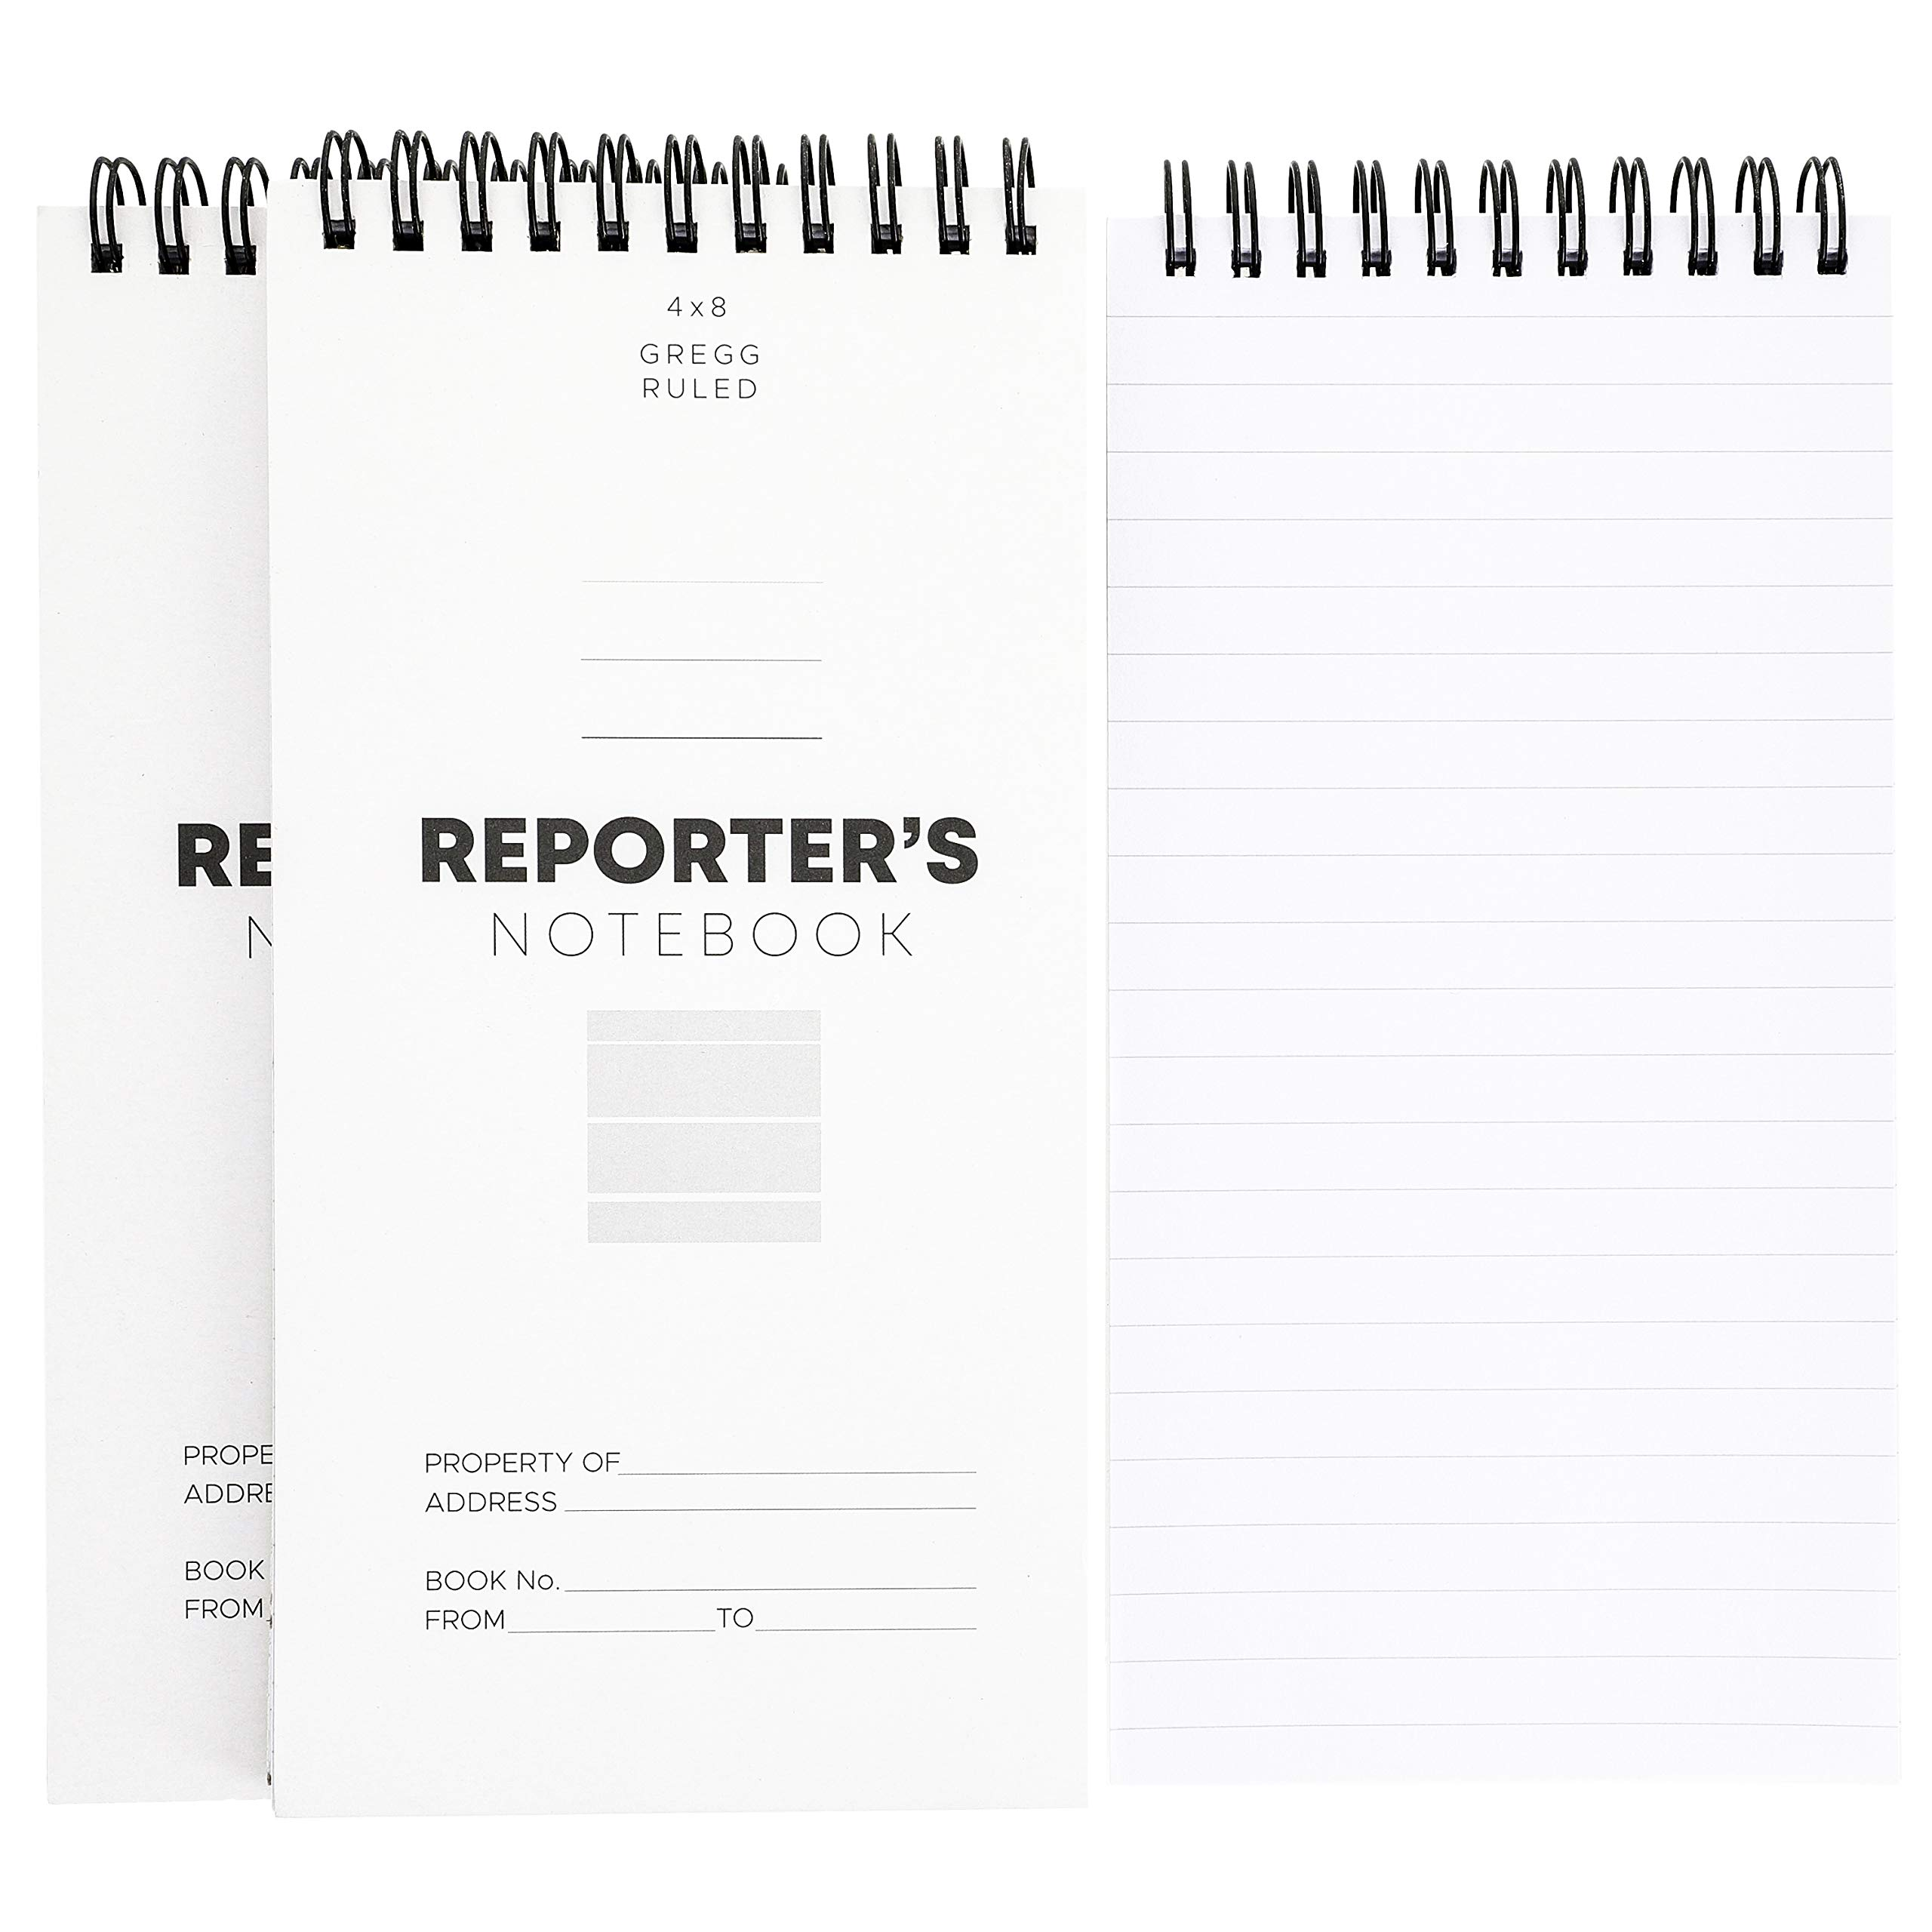 Juvale 12-Pack 8 x 4 Inch Reporters Pocket Spiral Memo Pad Notebook, 70 Sheets/140 Pages Per Book by Juvale